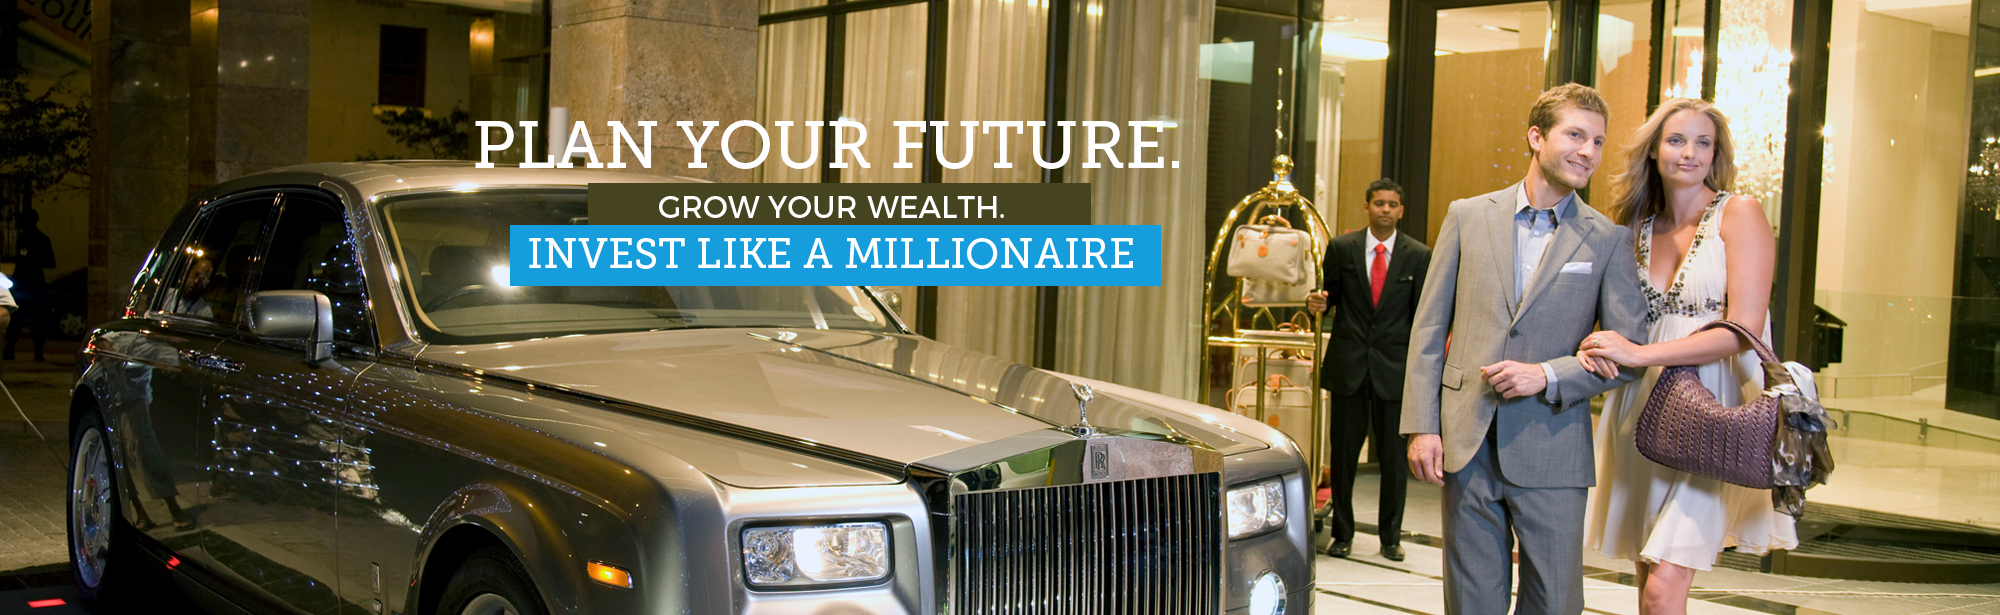 Grow your wealth and Invest like a millionaire. Best online managed forex company